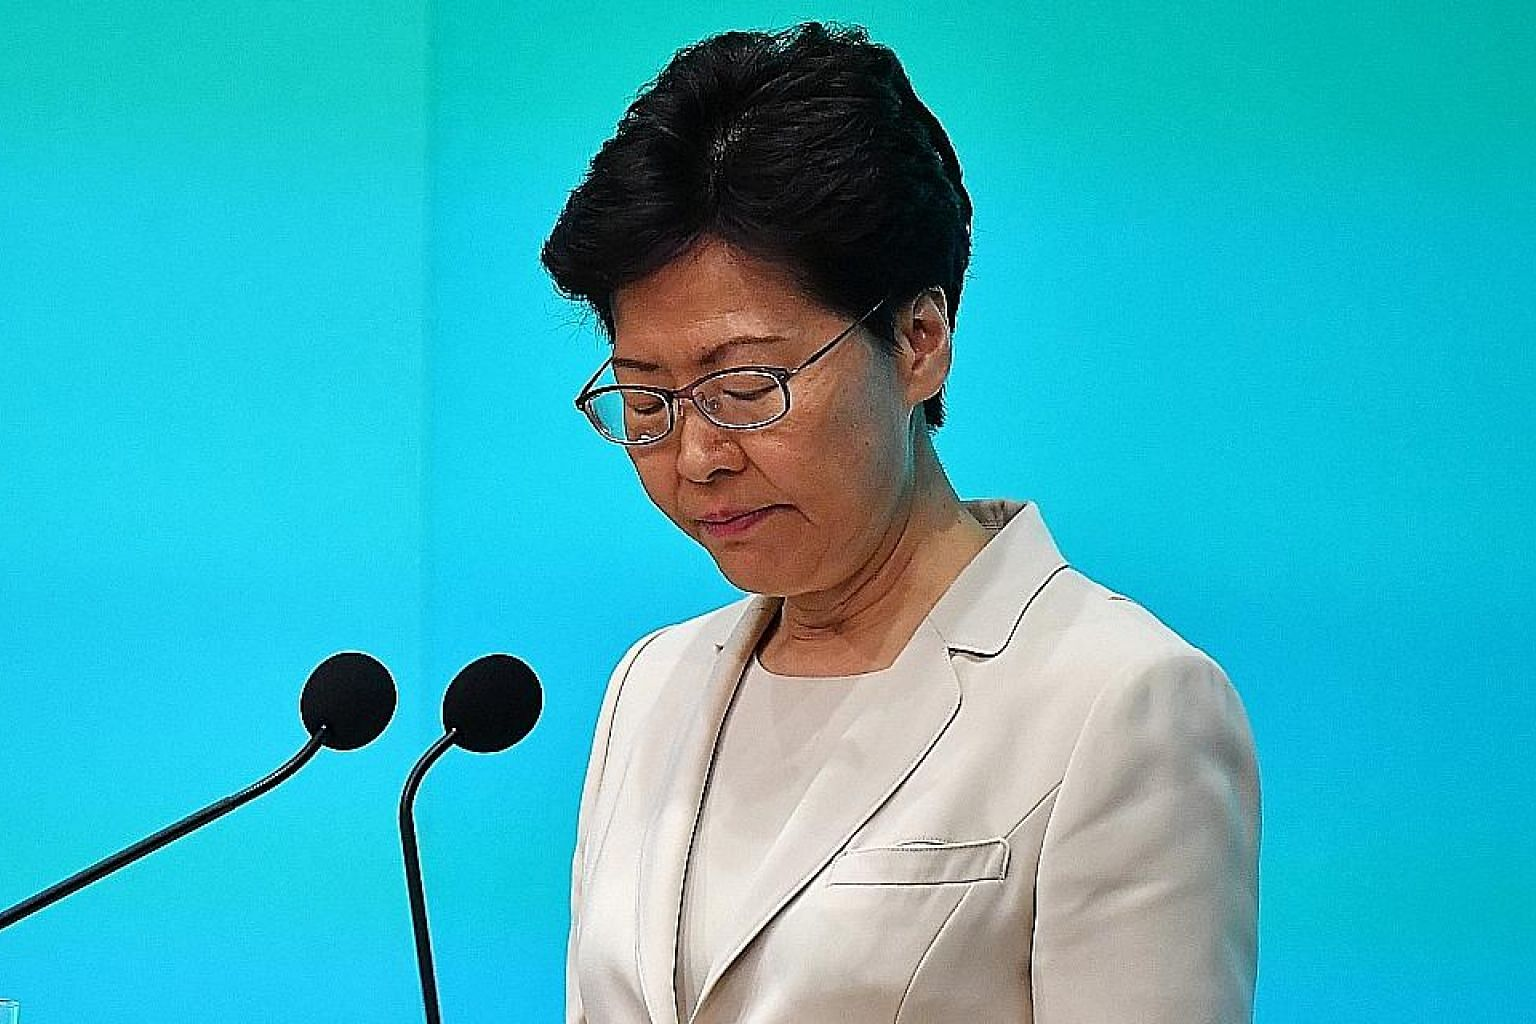 Hong Kong Chief Executive Carrie Lam at a media conference yesterday, where she apologised personally. She said she is committed to serving out her term, and appealed to the people for another chance to lead. ST PHOTO: LIM YAOHUI